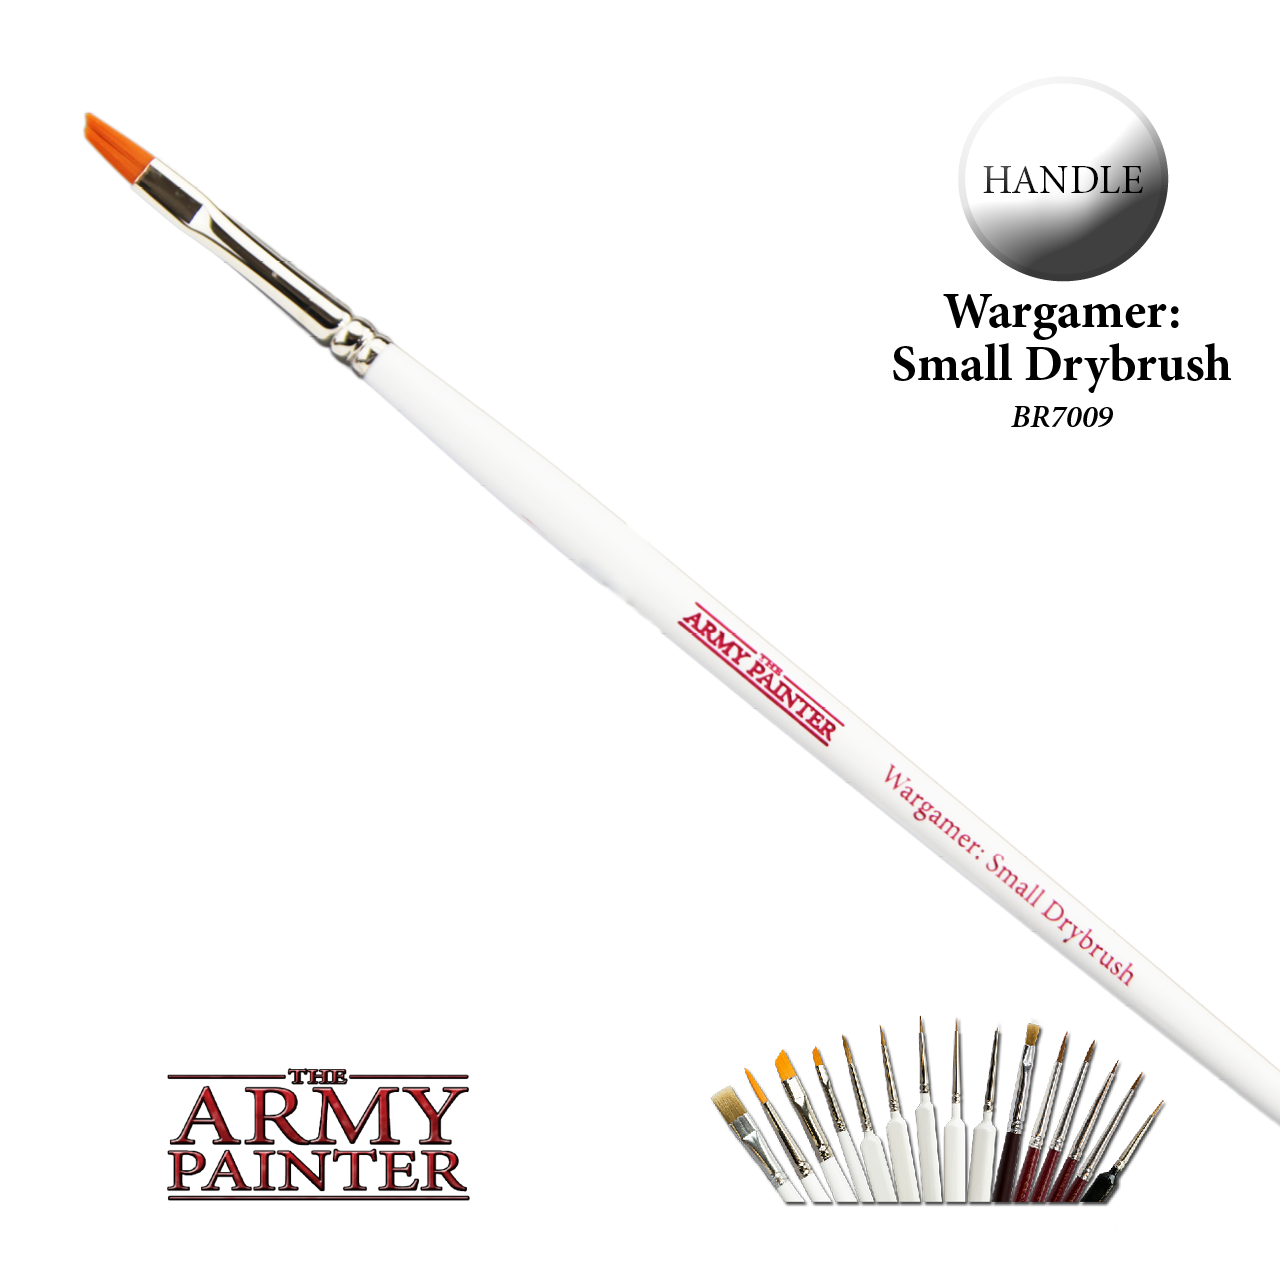 The Army Painter Wargamer Brush Series: Small Drybrush